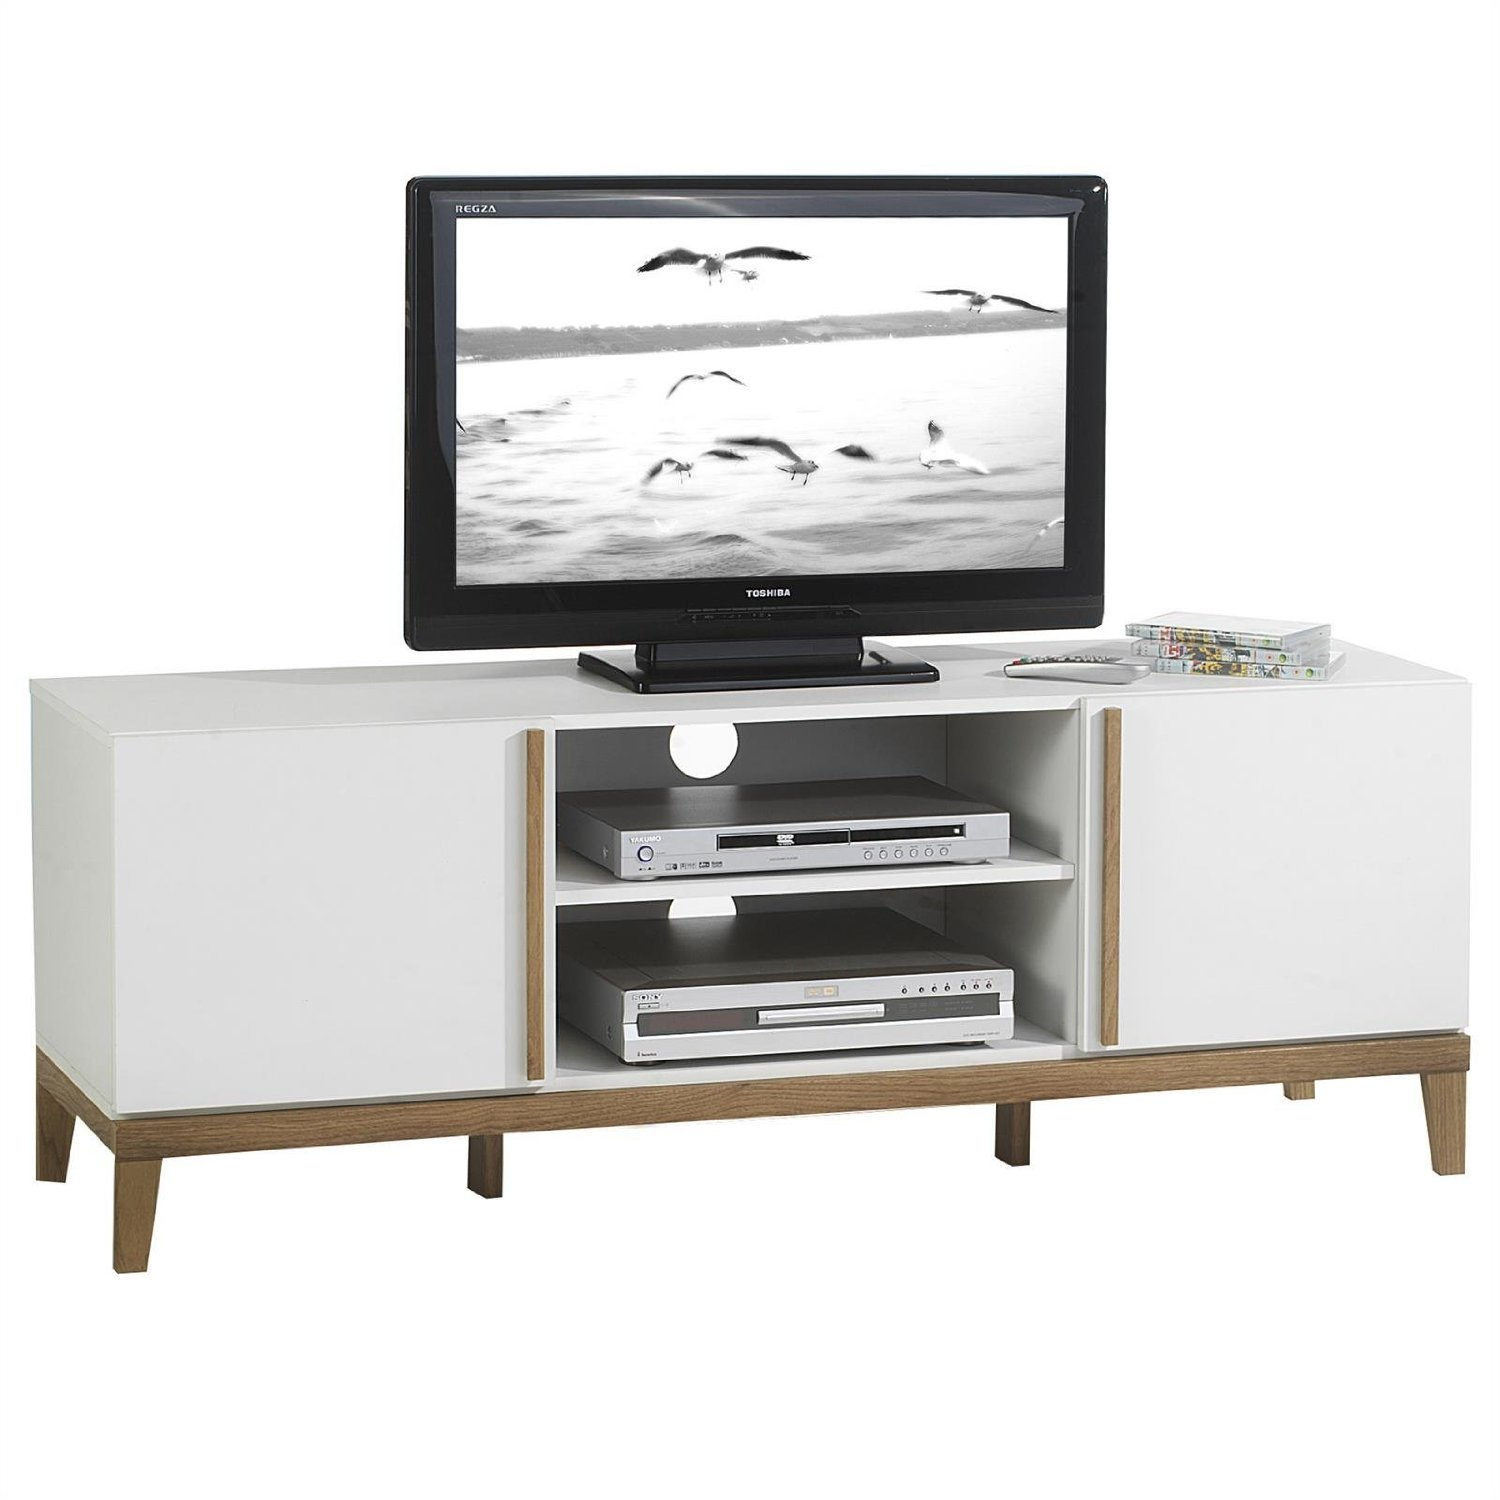 tv schrank wei trendy beautiful full size of mobel schwarz weiss kleines tv mobel schwarz weiss. Black Bedroom Furniture Sets. Home Design Ideas